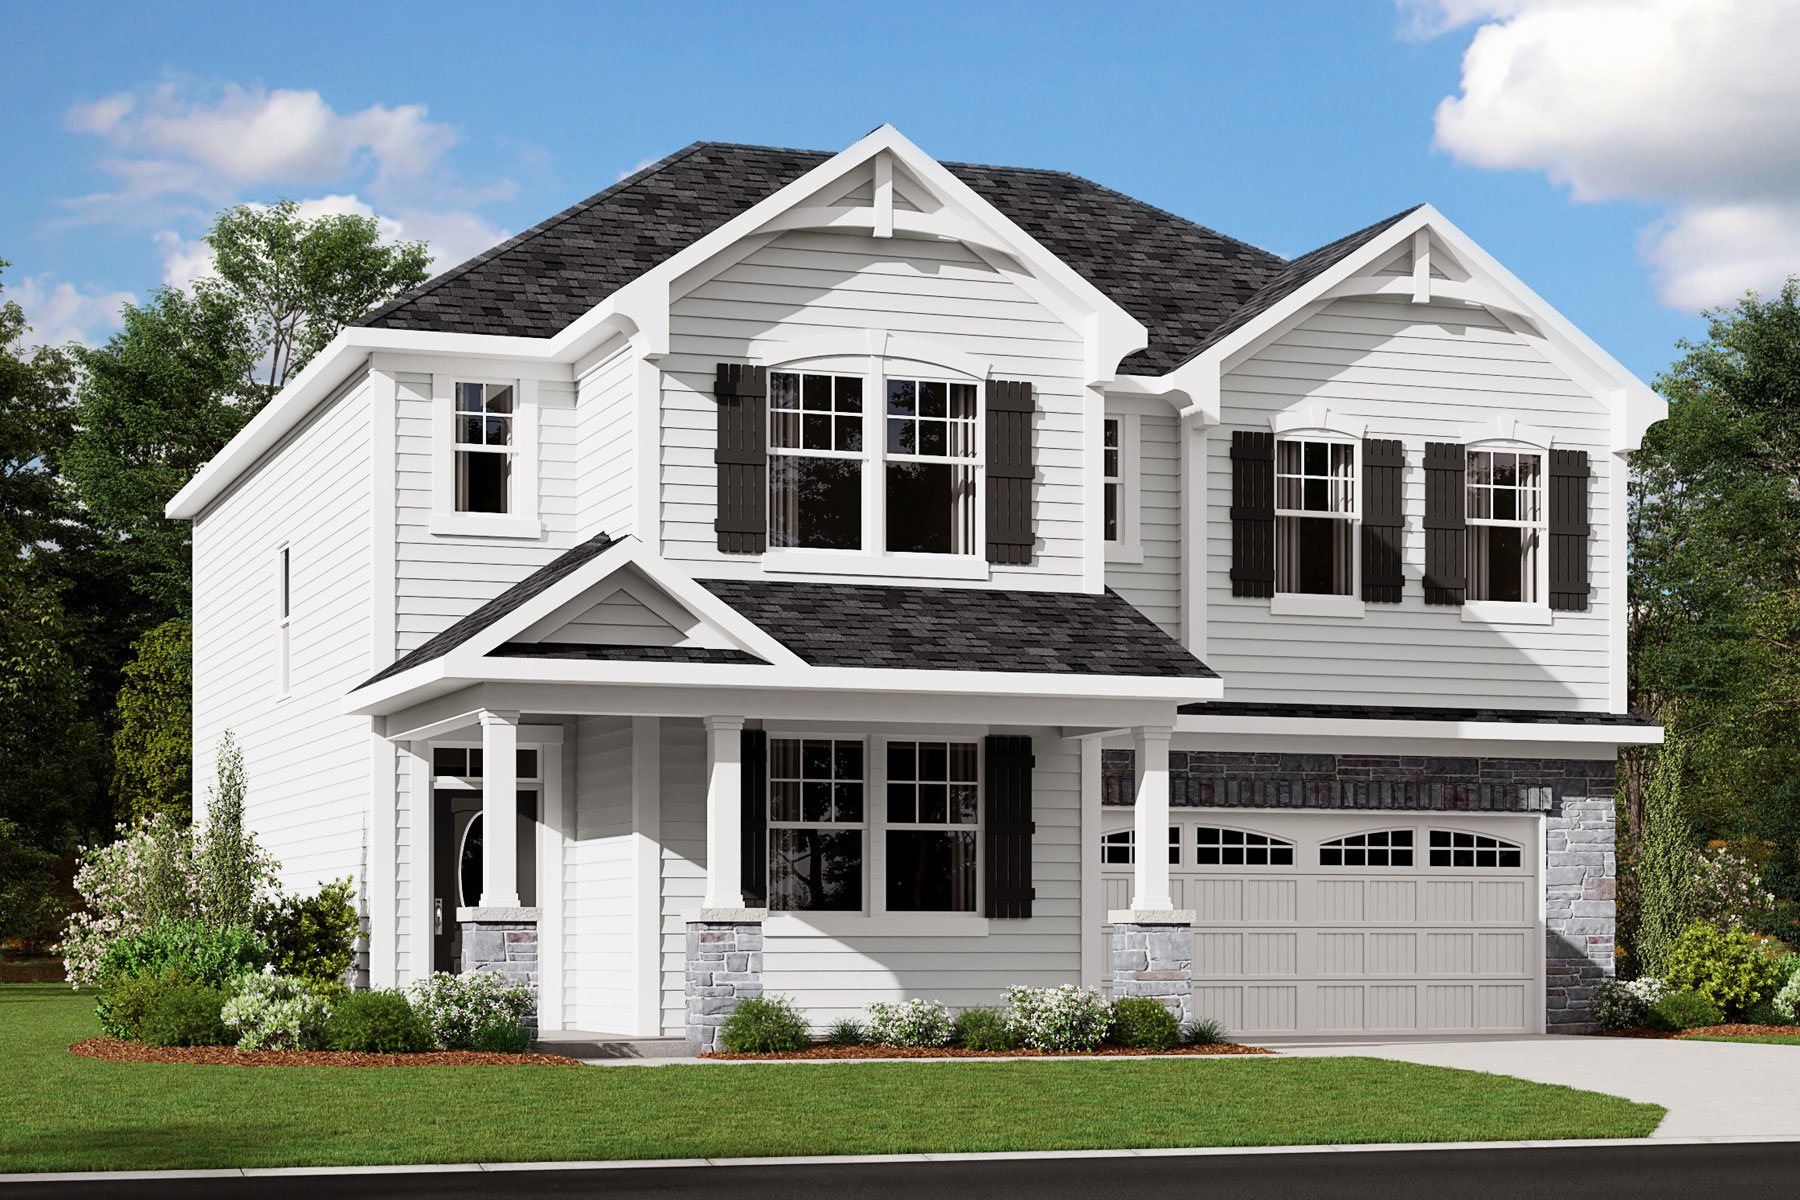 Pierce Plan elevationfrenchcountry_benttree_decker at Bent Tree in Fuquay-Varina North Carolina by Mattamy Homes